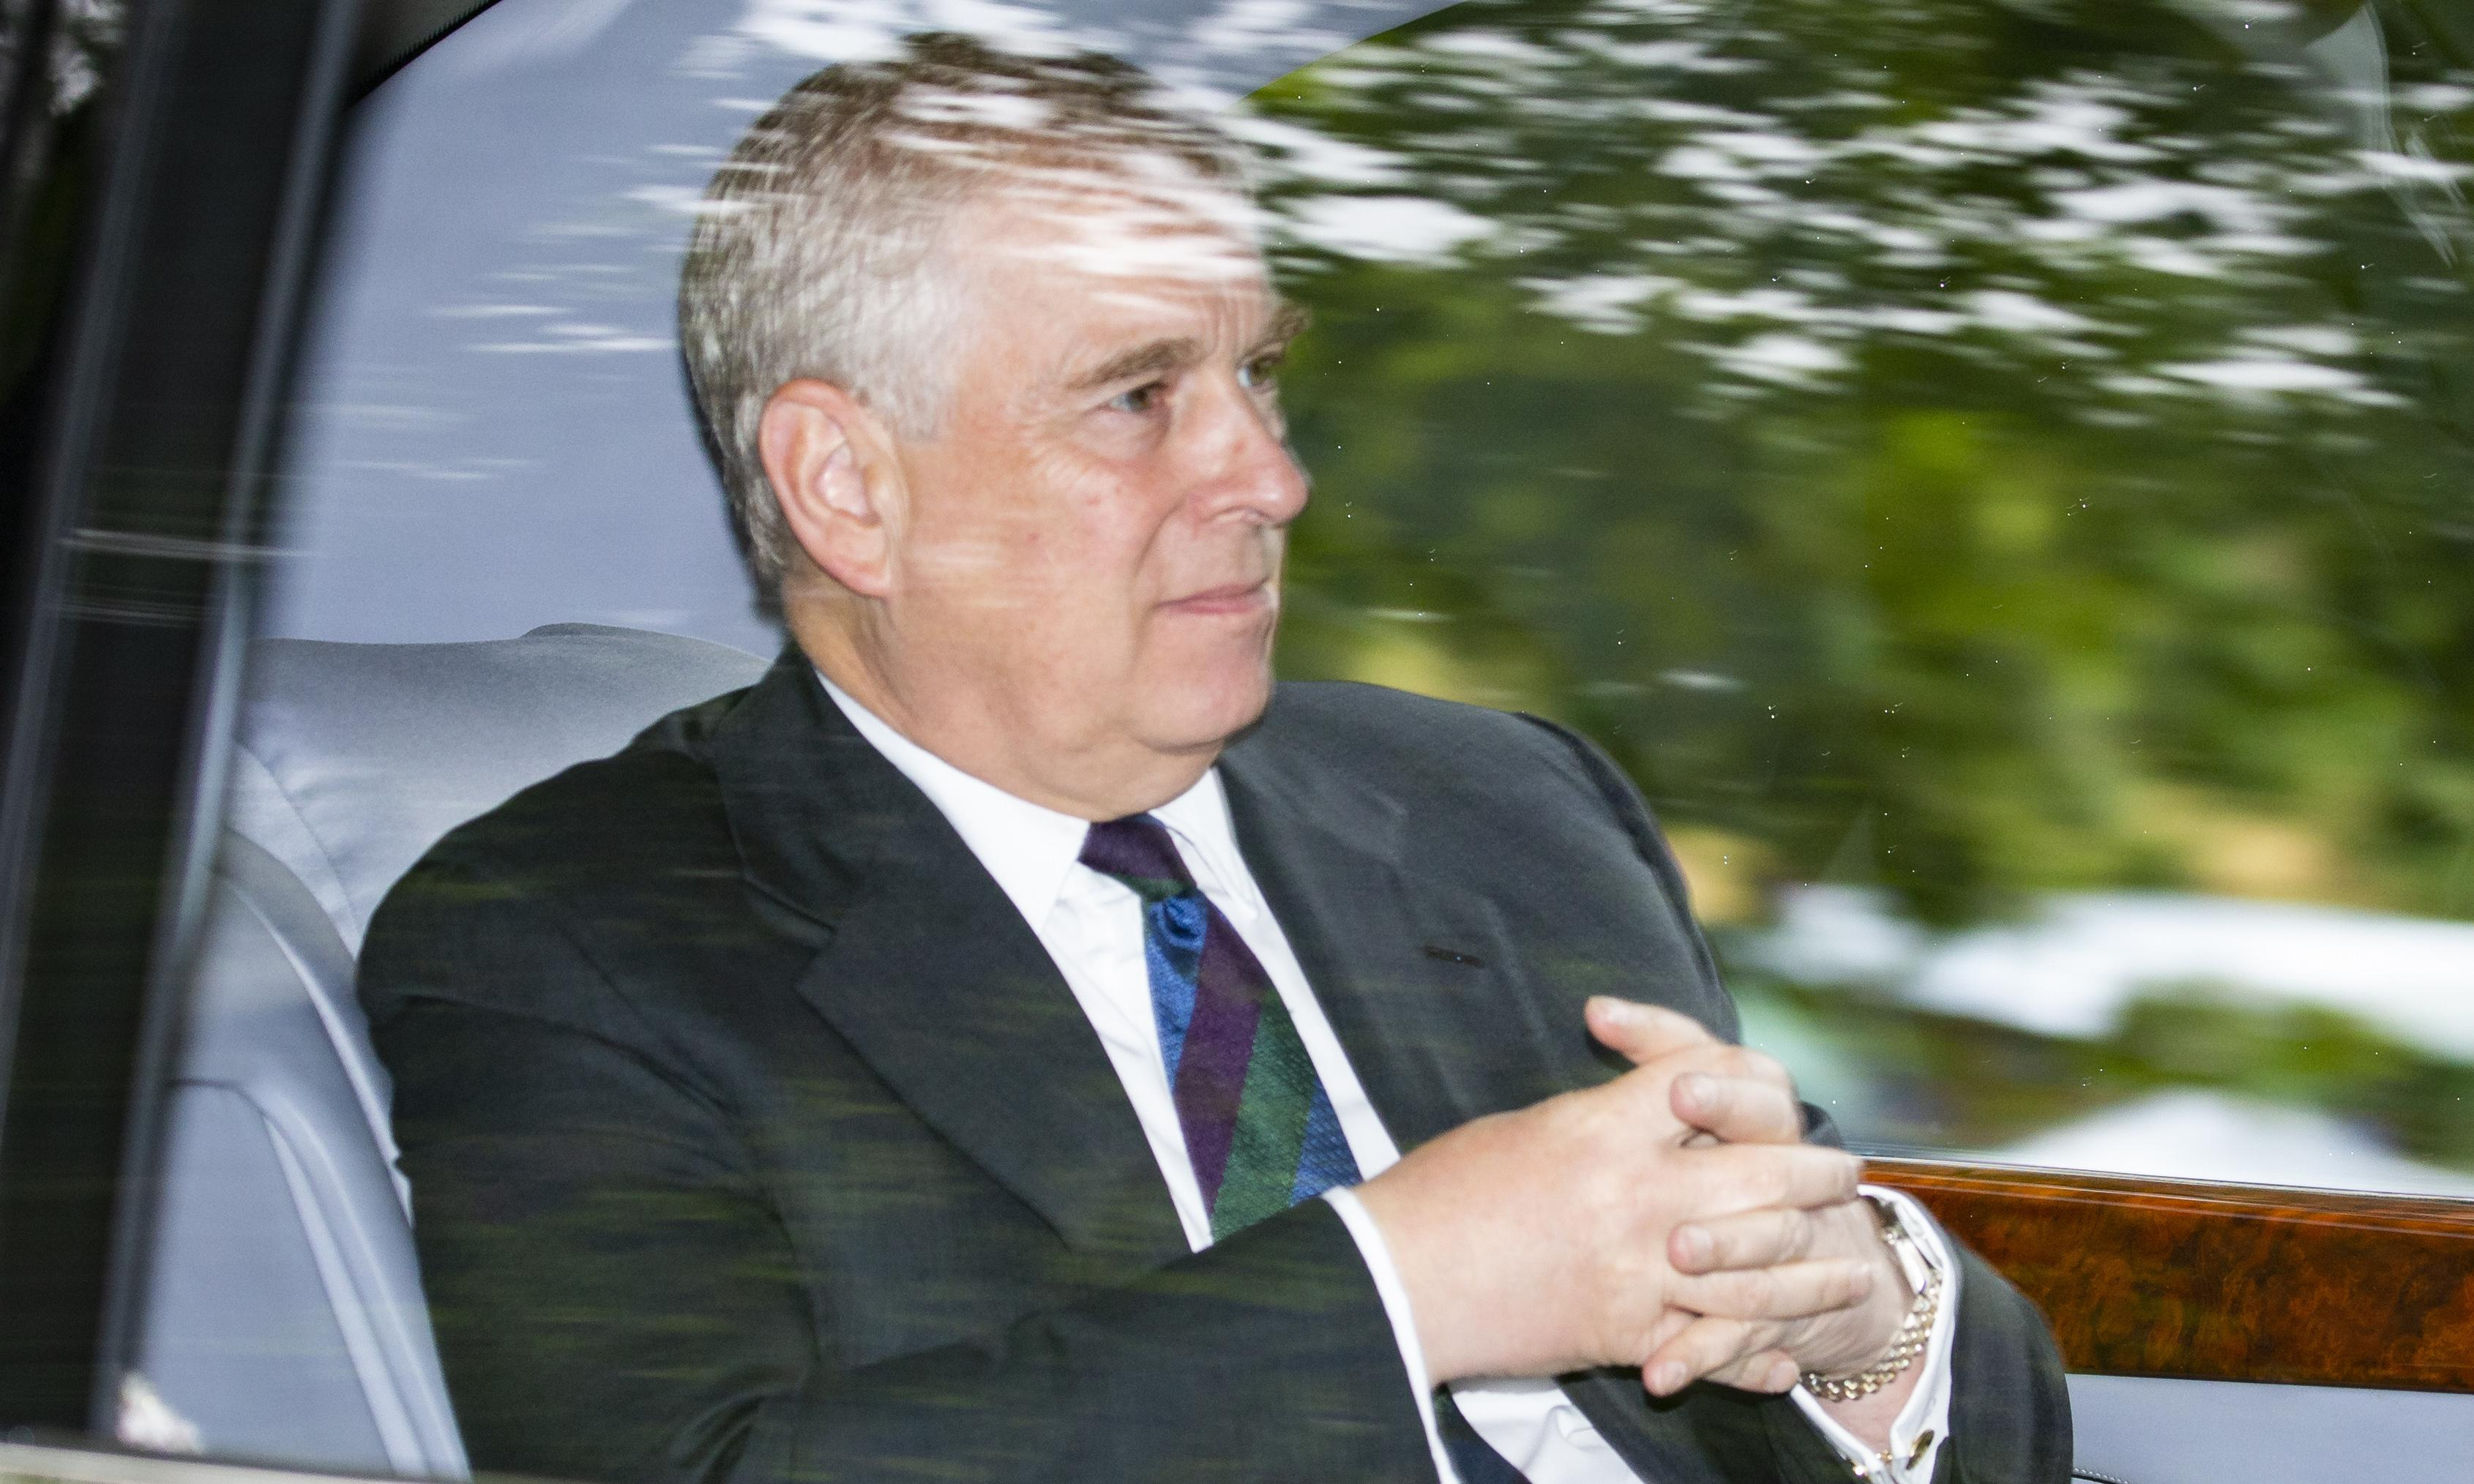 Prince Andrew 'appalled' by Epstein sex abuse claims